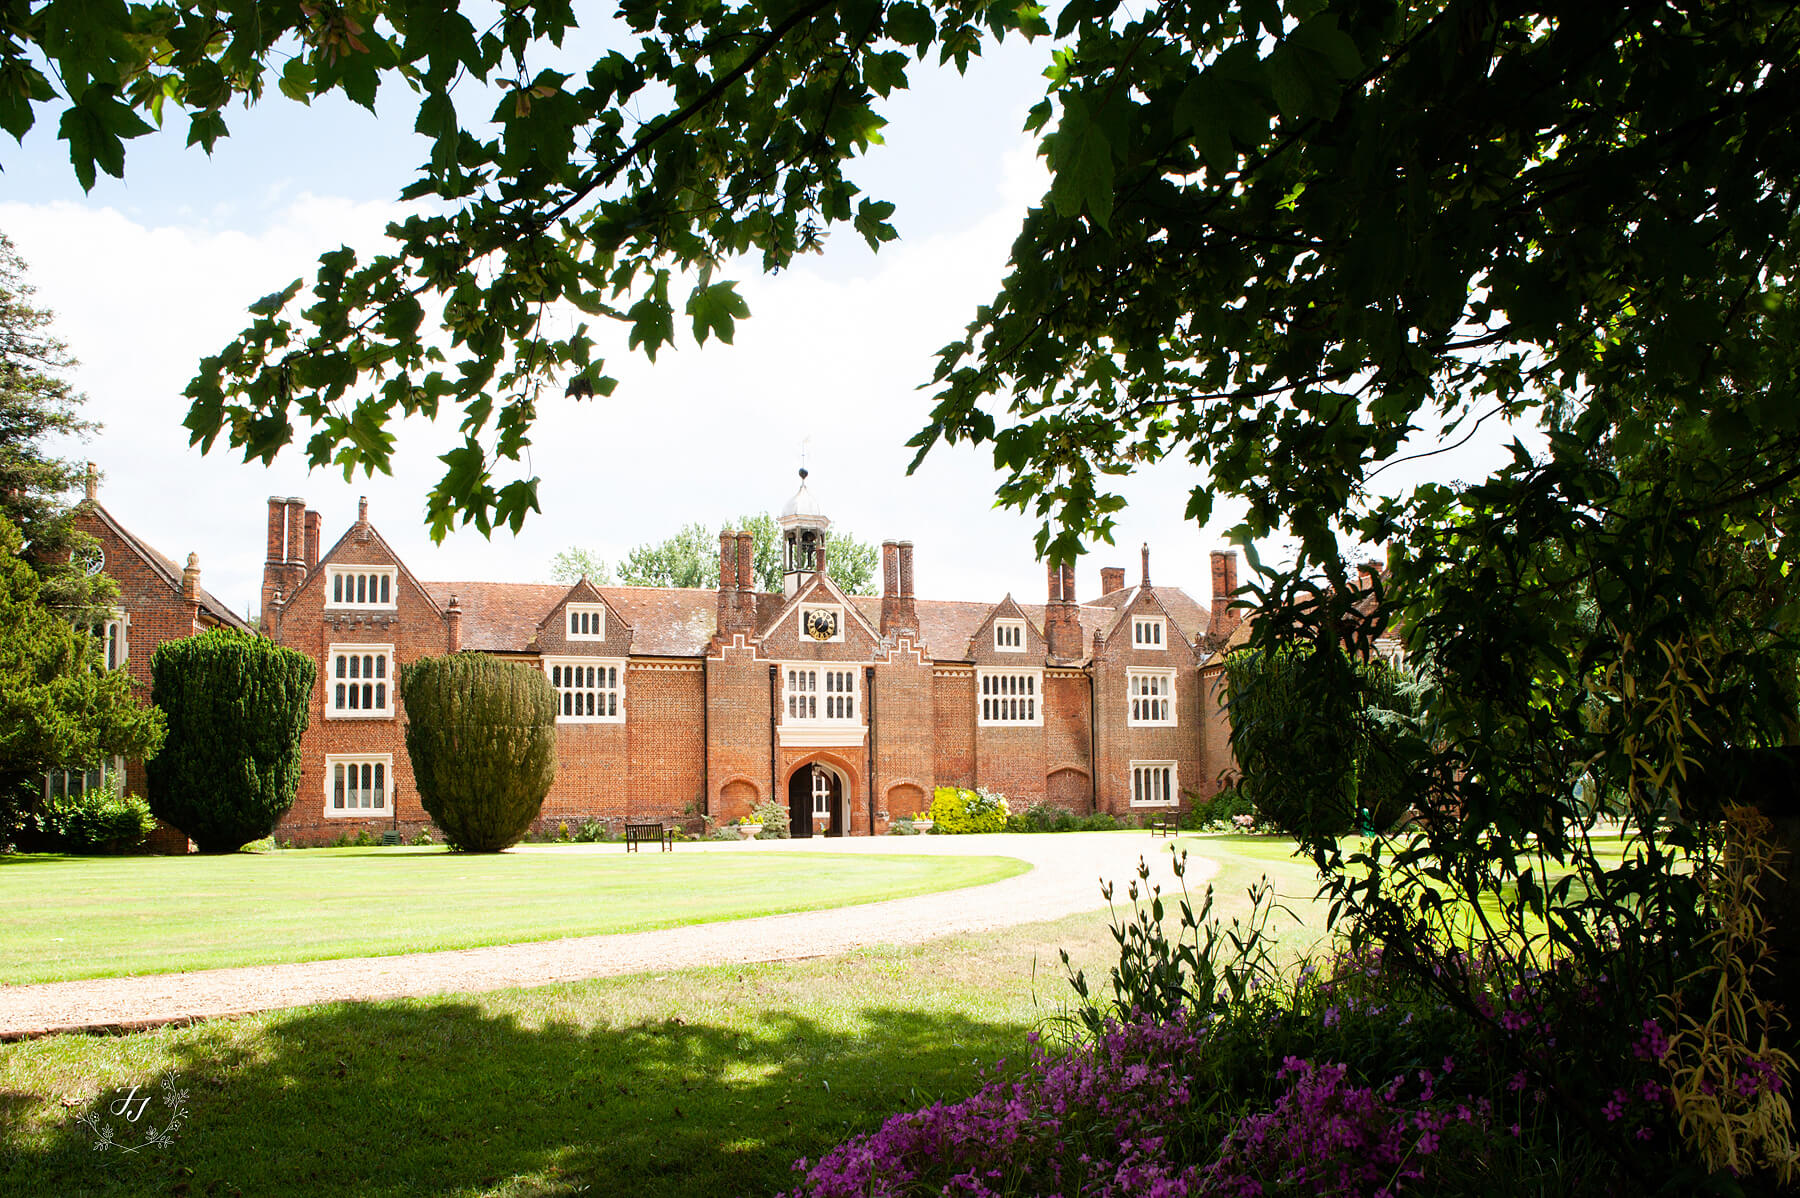 The Exclusive Driveway at The Clock Tower Entrance of Gosfield Hall